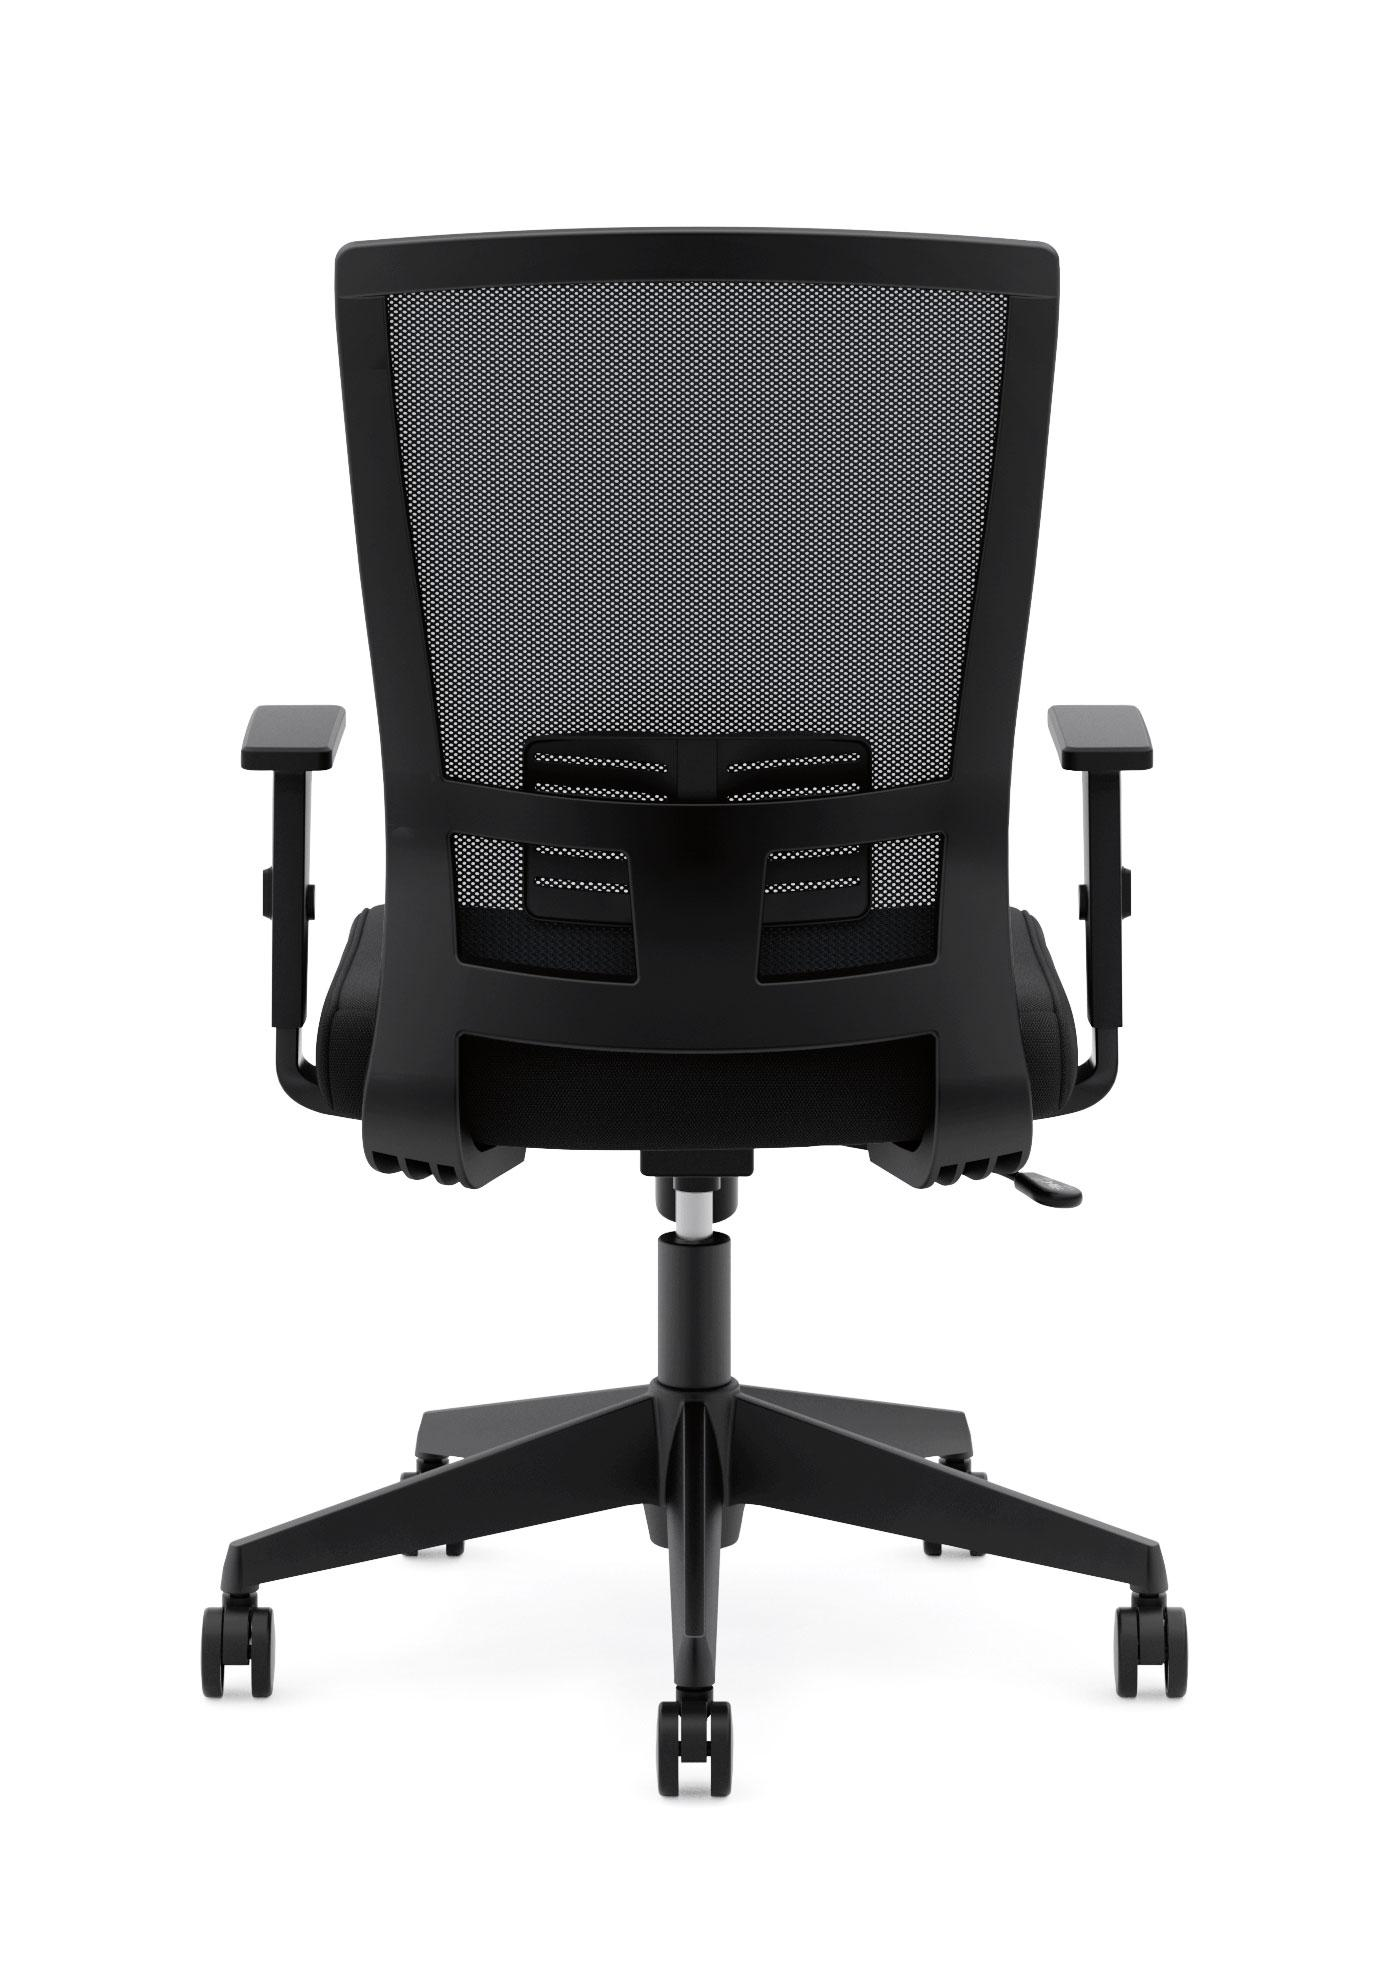 Basyx By Hon Hon Office Furniture Computer Chair Desk